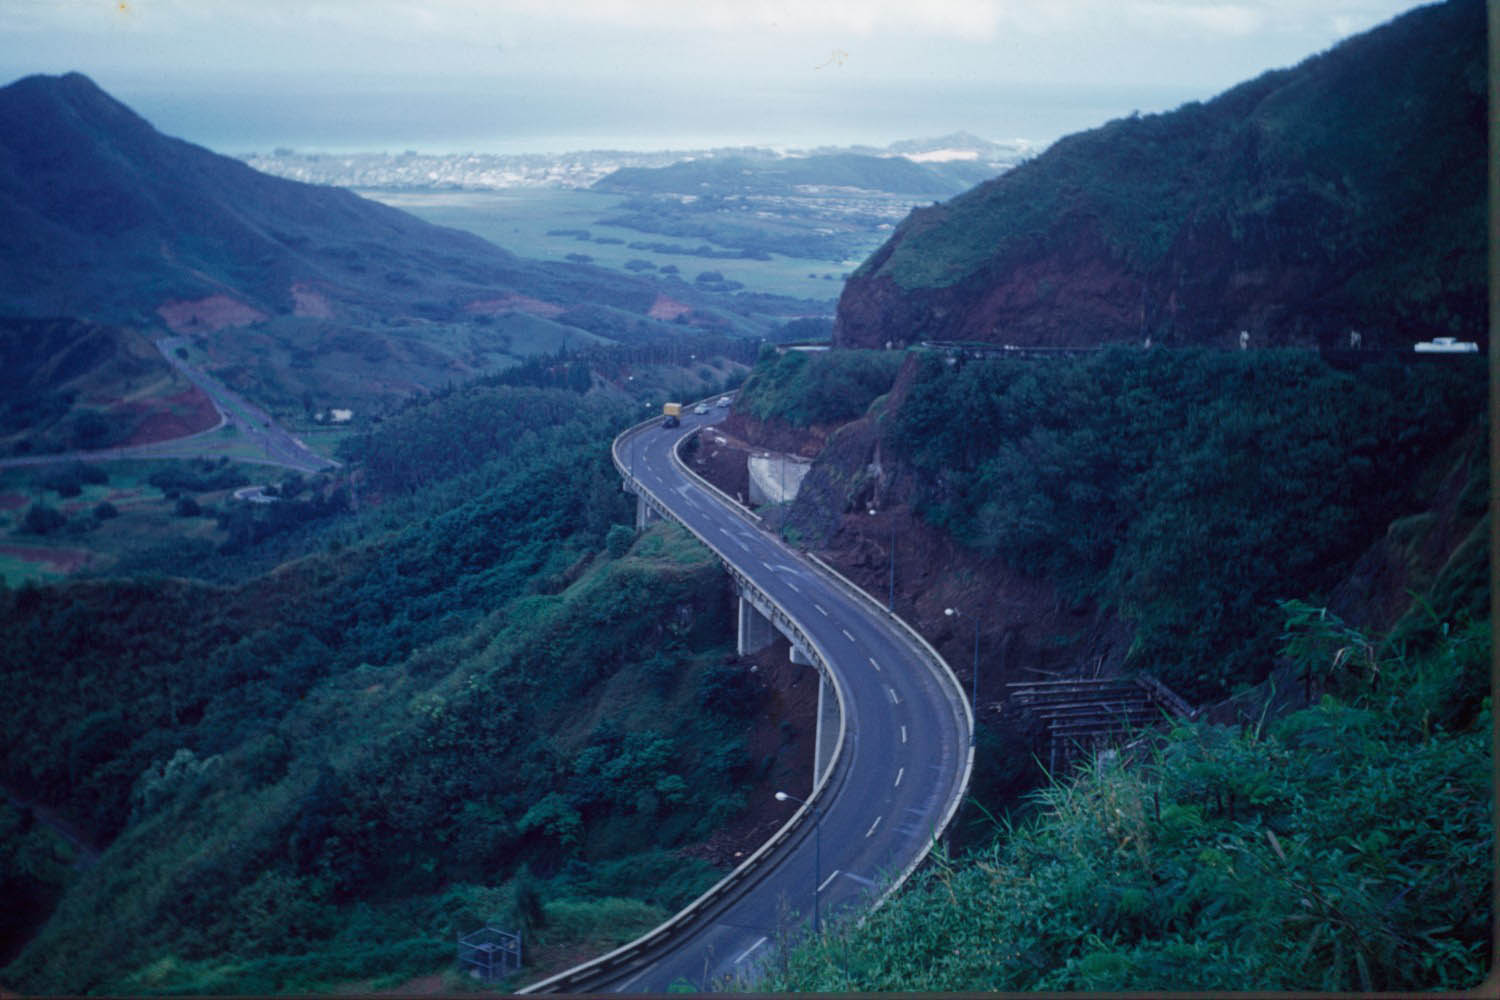 http://www.hawaiihighways.com/pali-hwy-1960-large.jpg